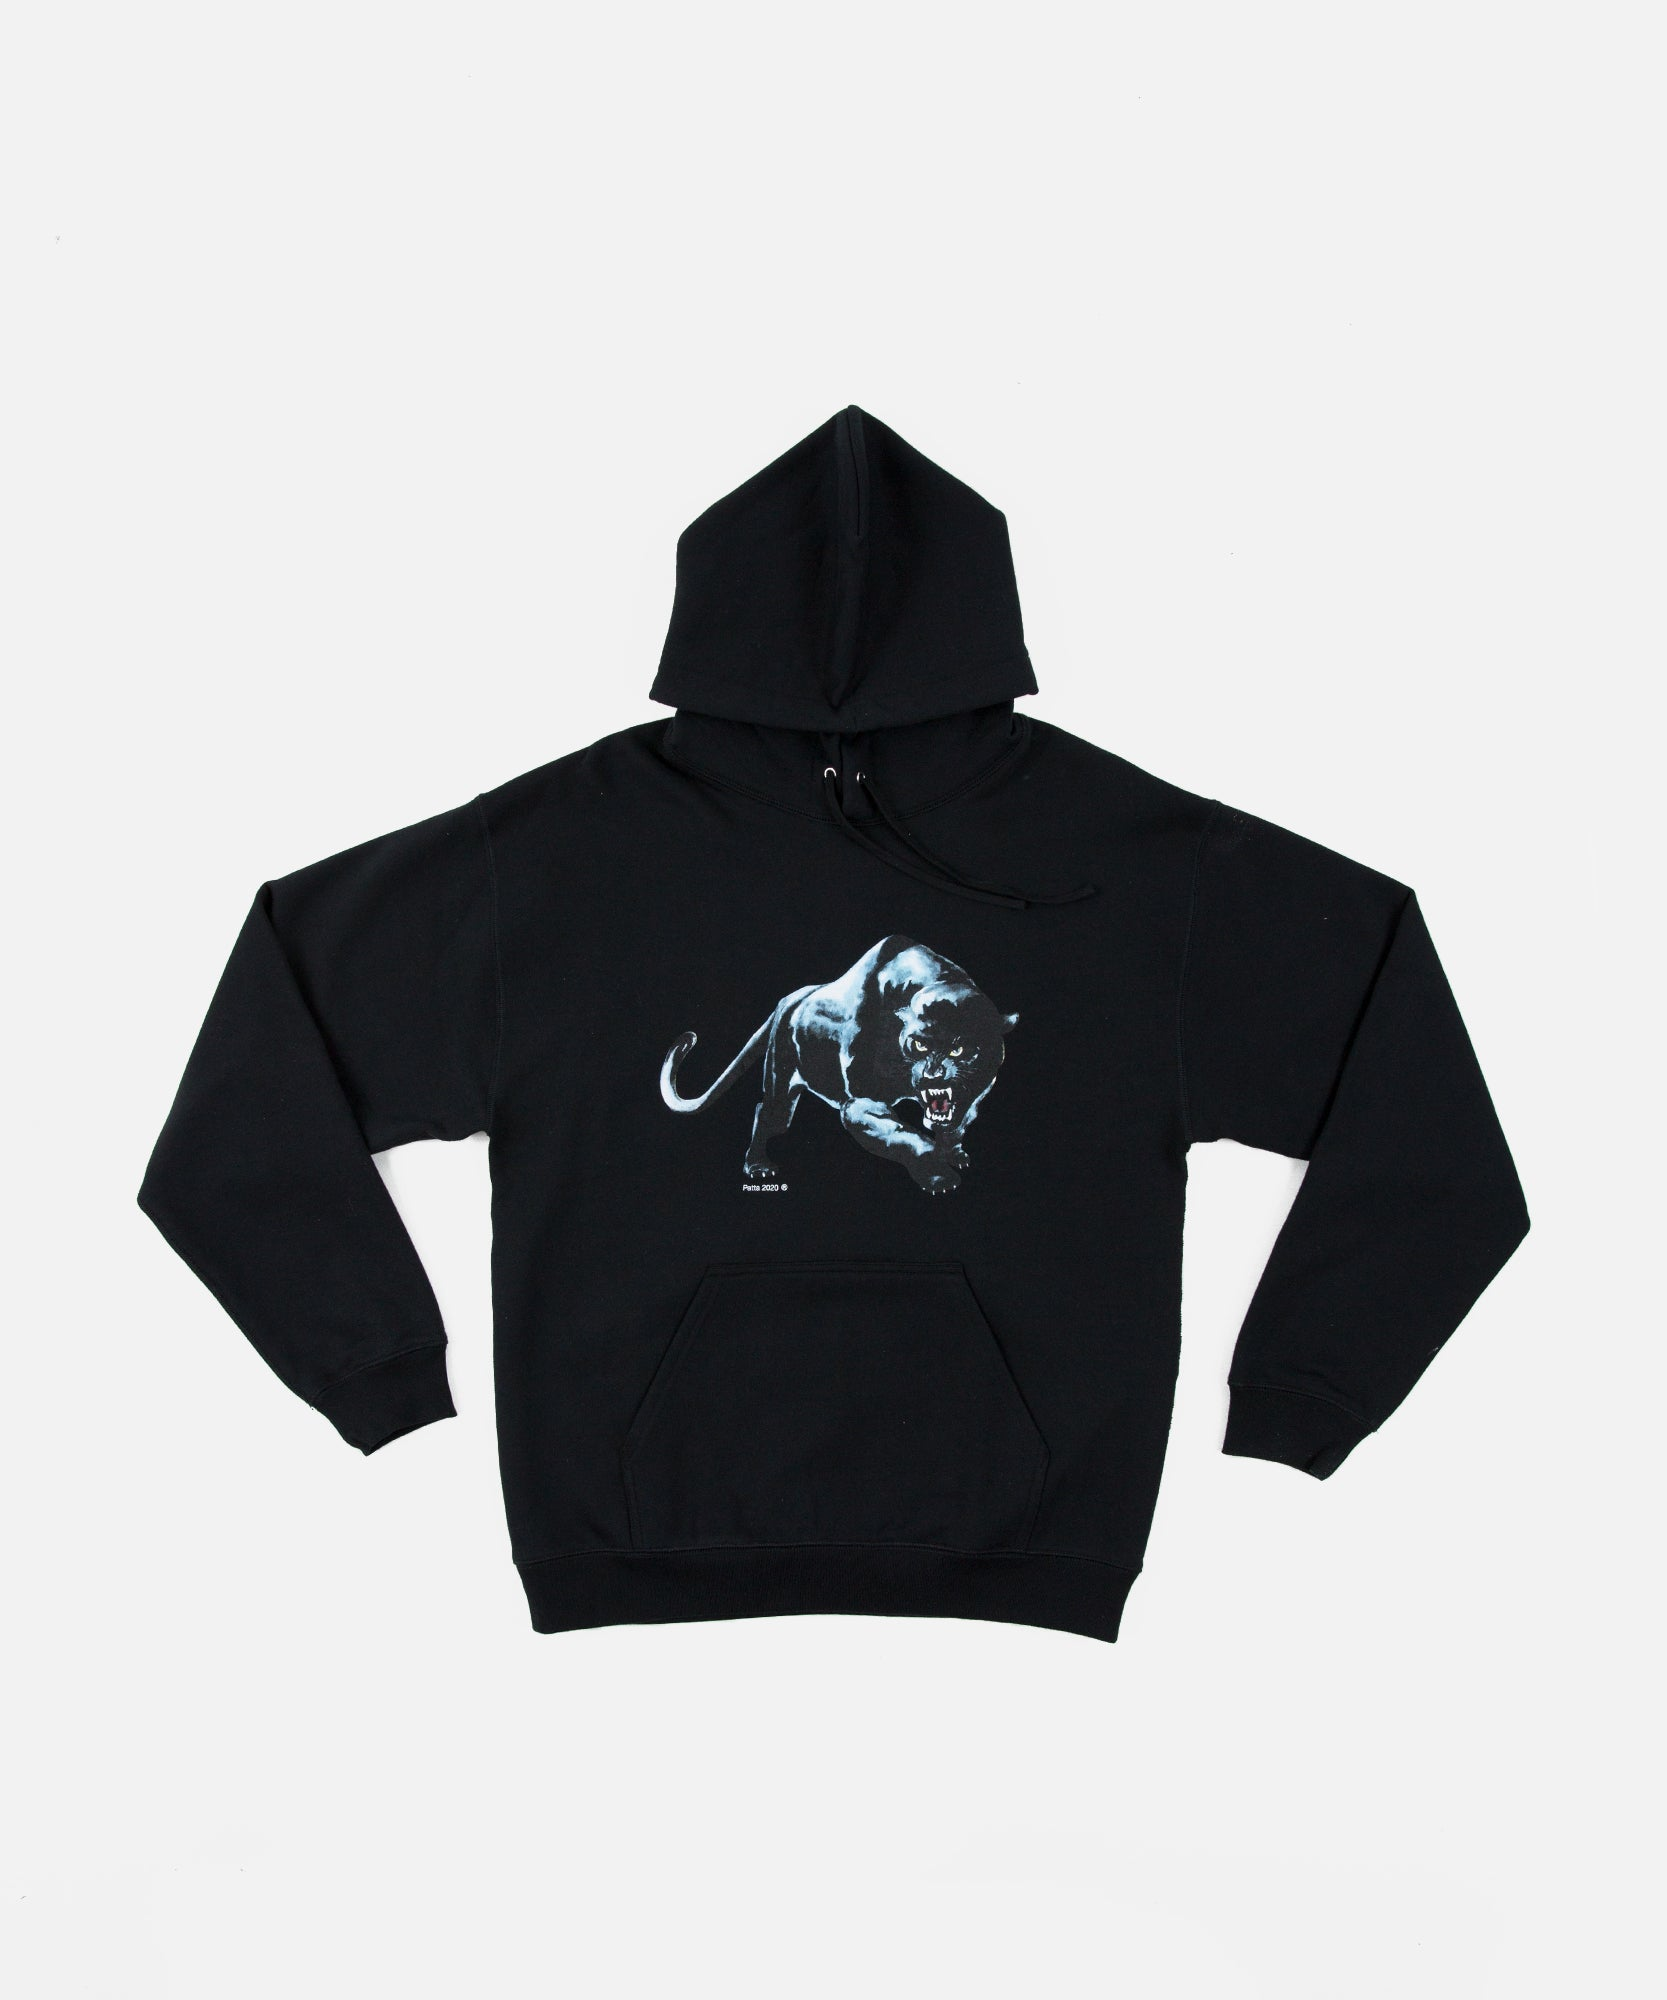 Patta Panther Hooded Sweater (Black)